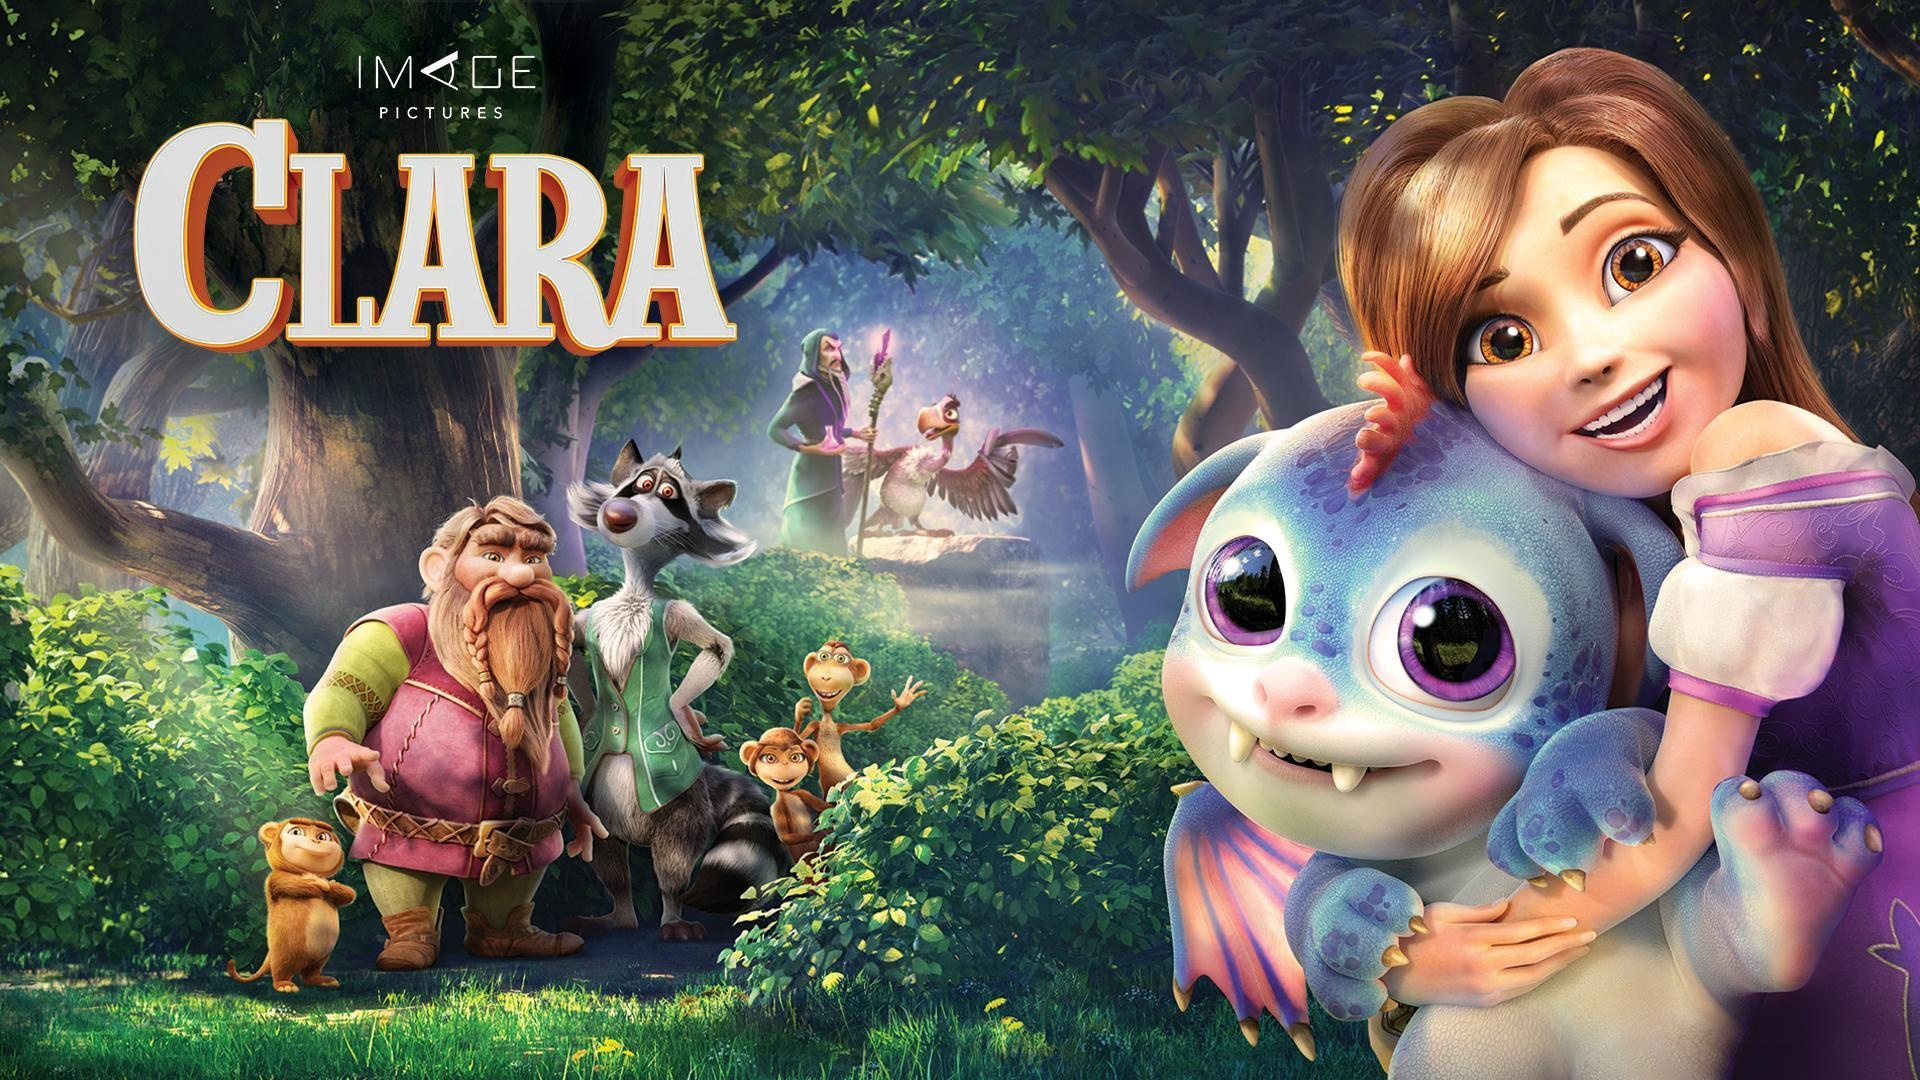 Clara Is An Animated Family Adventure Comedy Movie